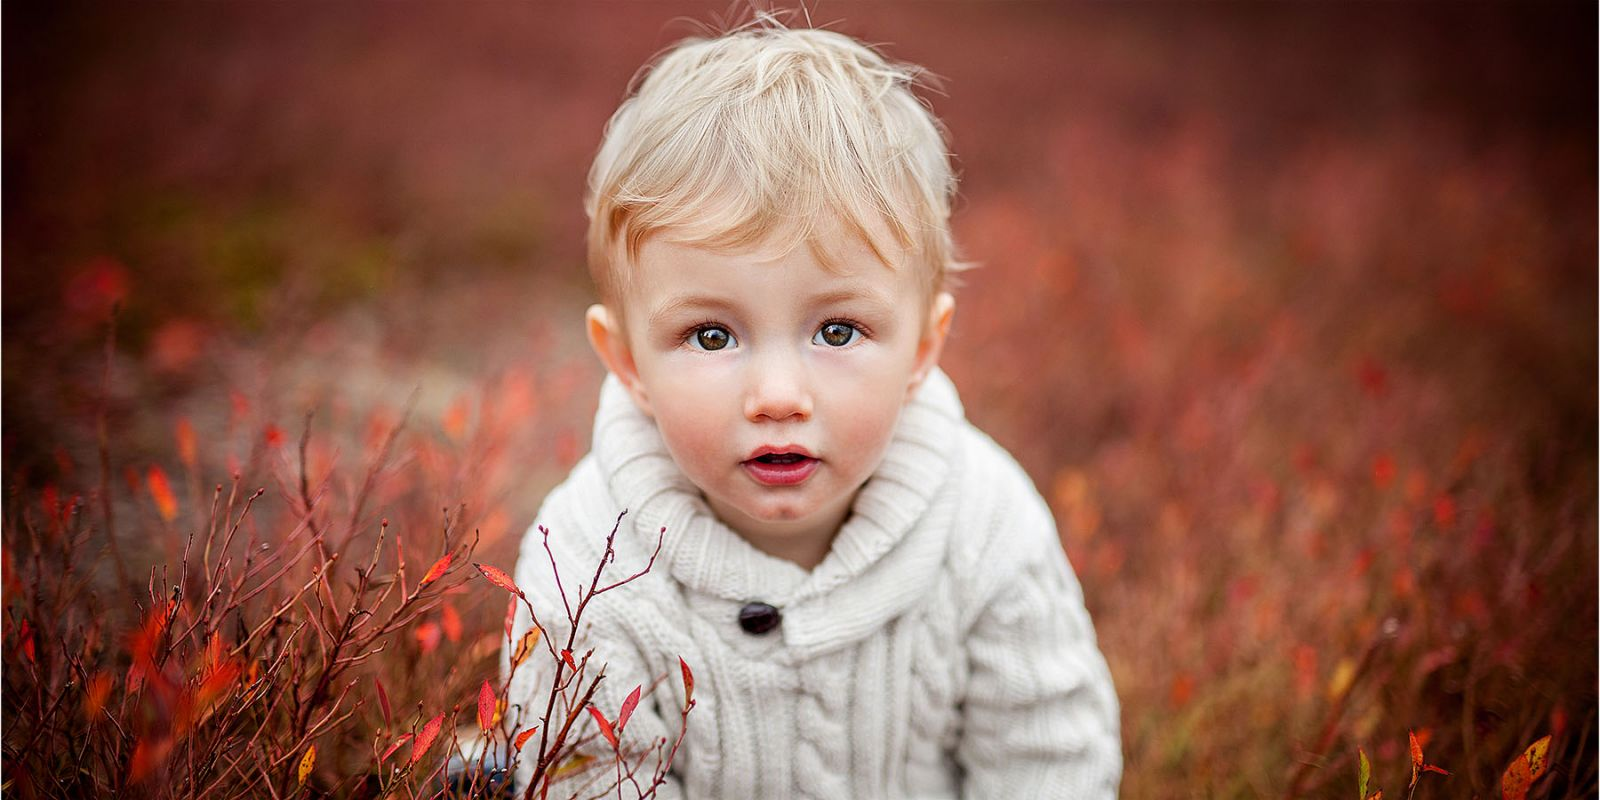 Young boy with blonde hair and brown eyes in a red blueberry field.